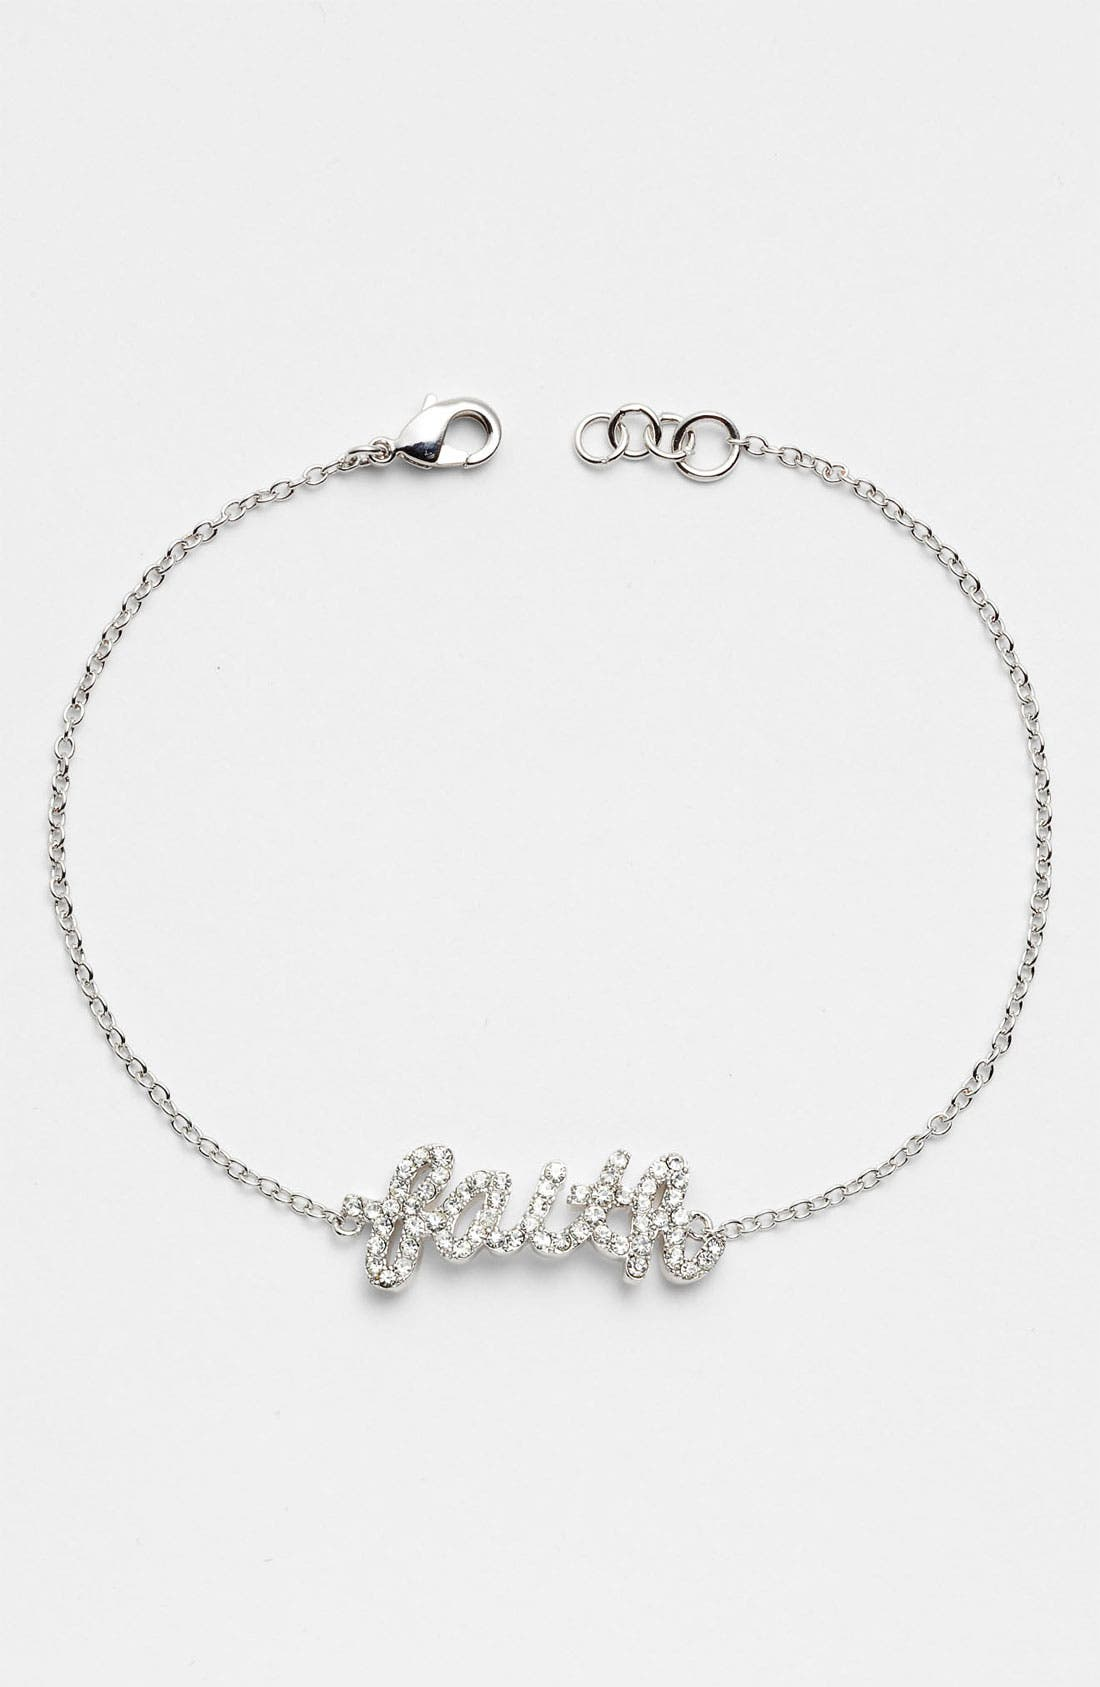 Alternate Image 1 Selected - Ariella Collection 'Messages - Faith' Script Station Bracelet